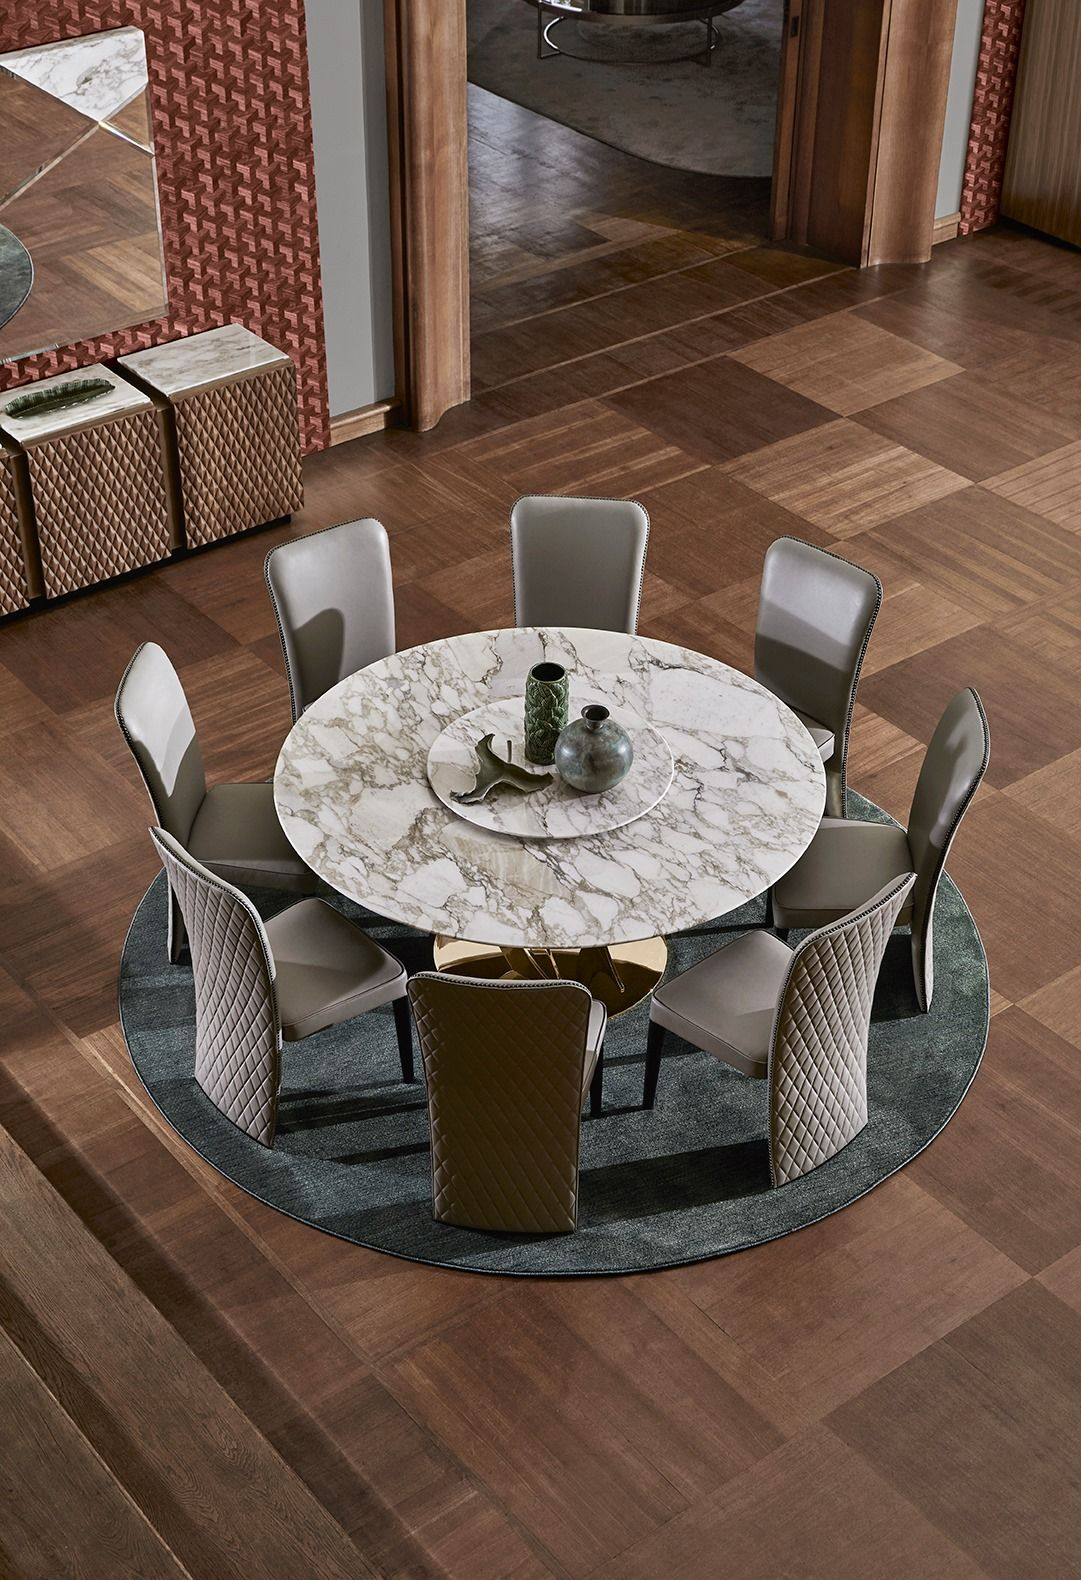 Opera Contemporary Wendy Table The Round Table Top In Mar